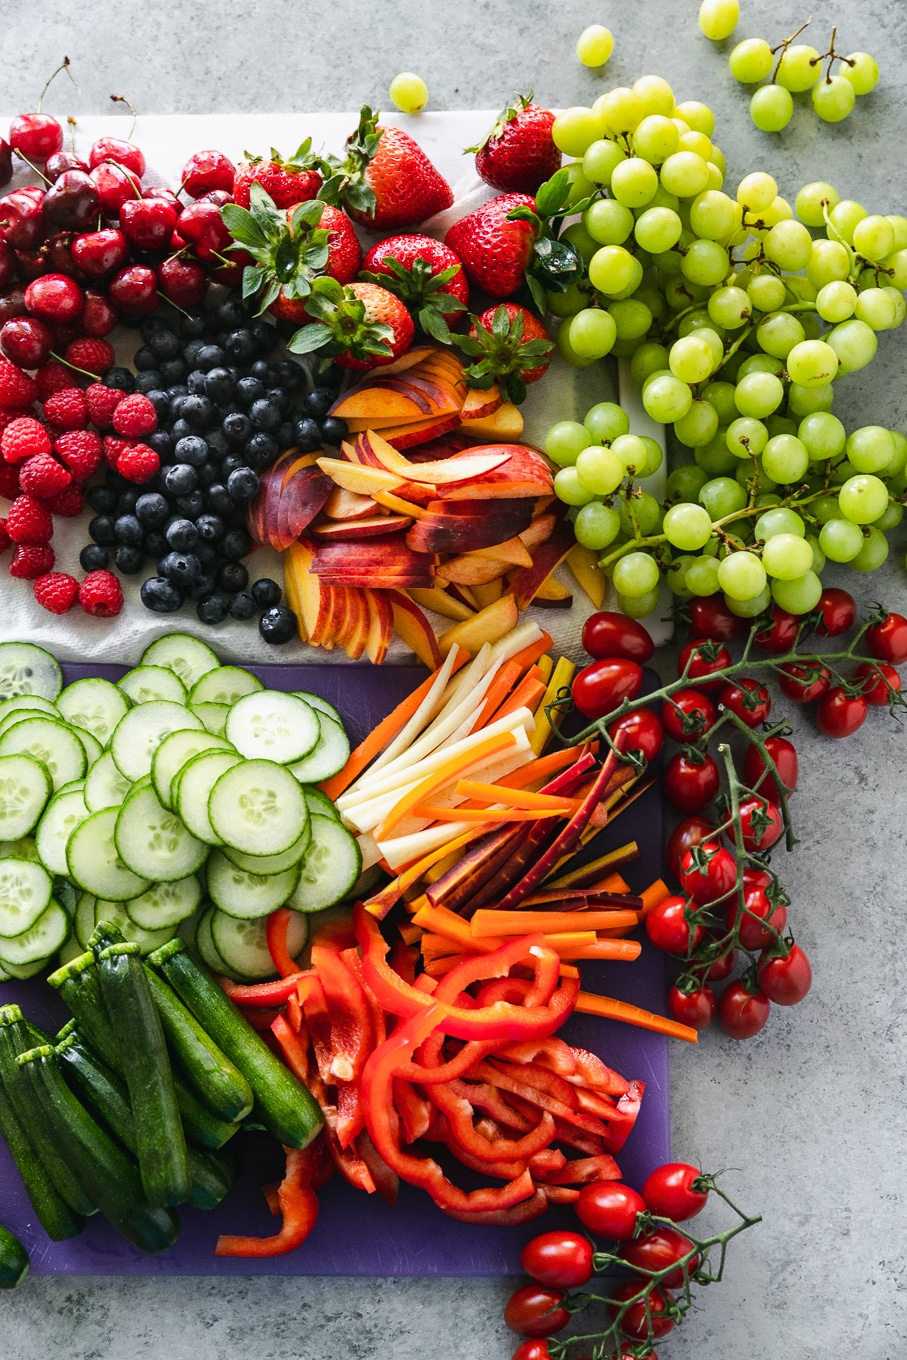 Overhead shot of colorful fruits and vegetables